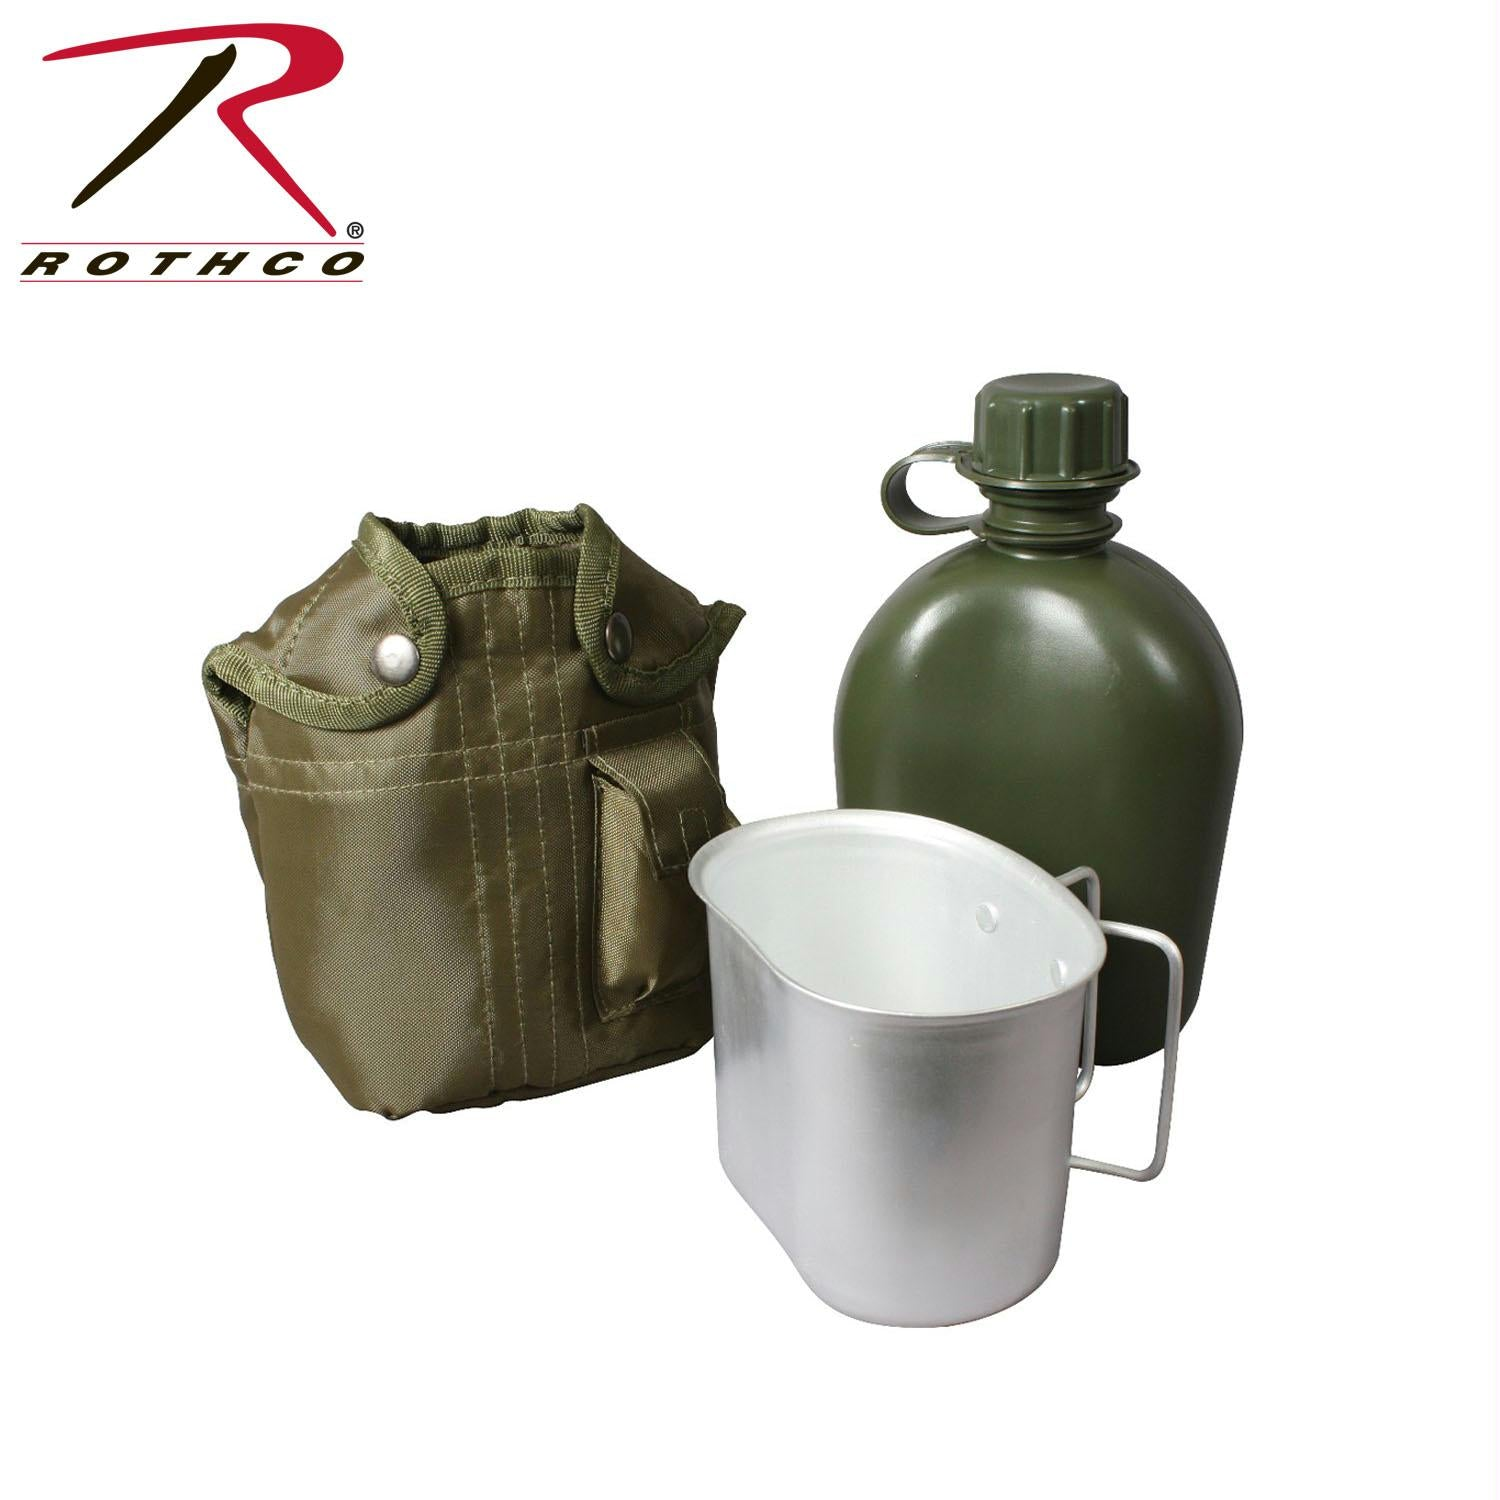 Rothco 3 Piece Canteen Kit With Cover & Aluminum Cup - Olive Drab